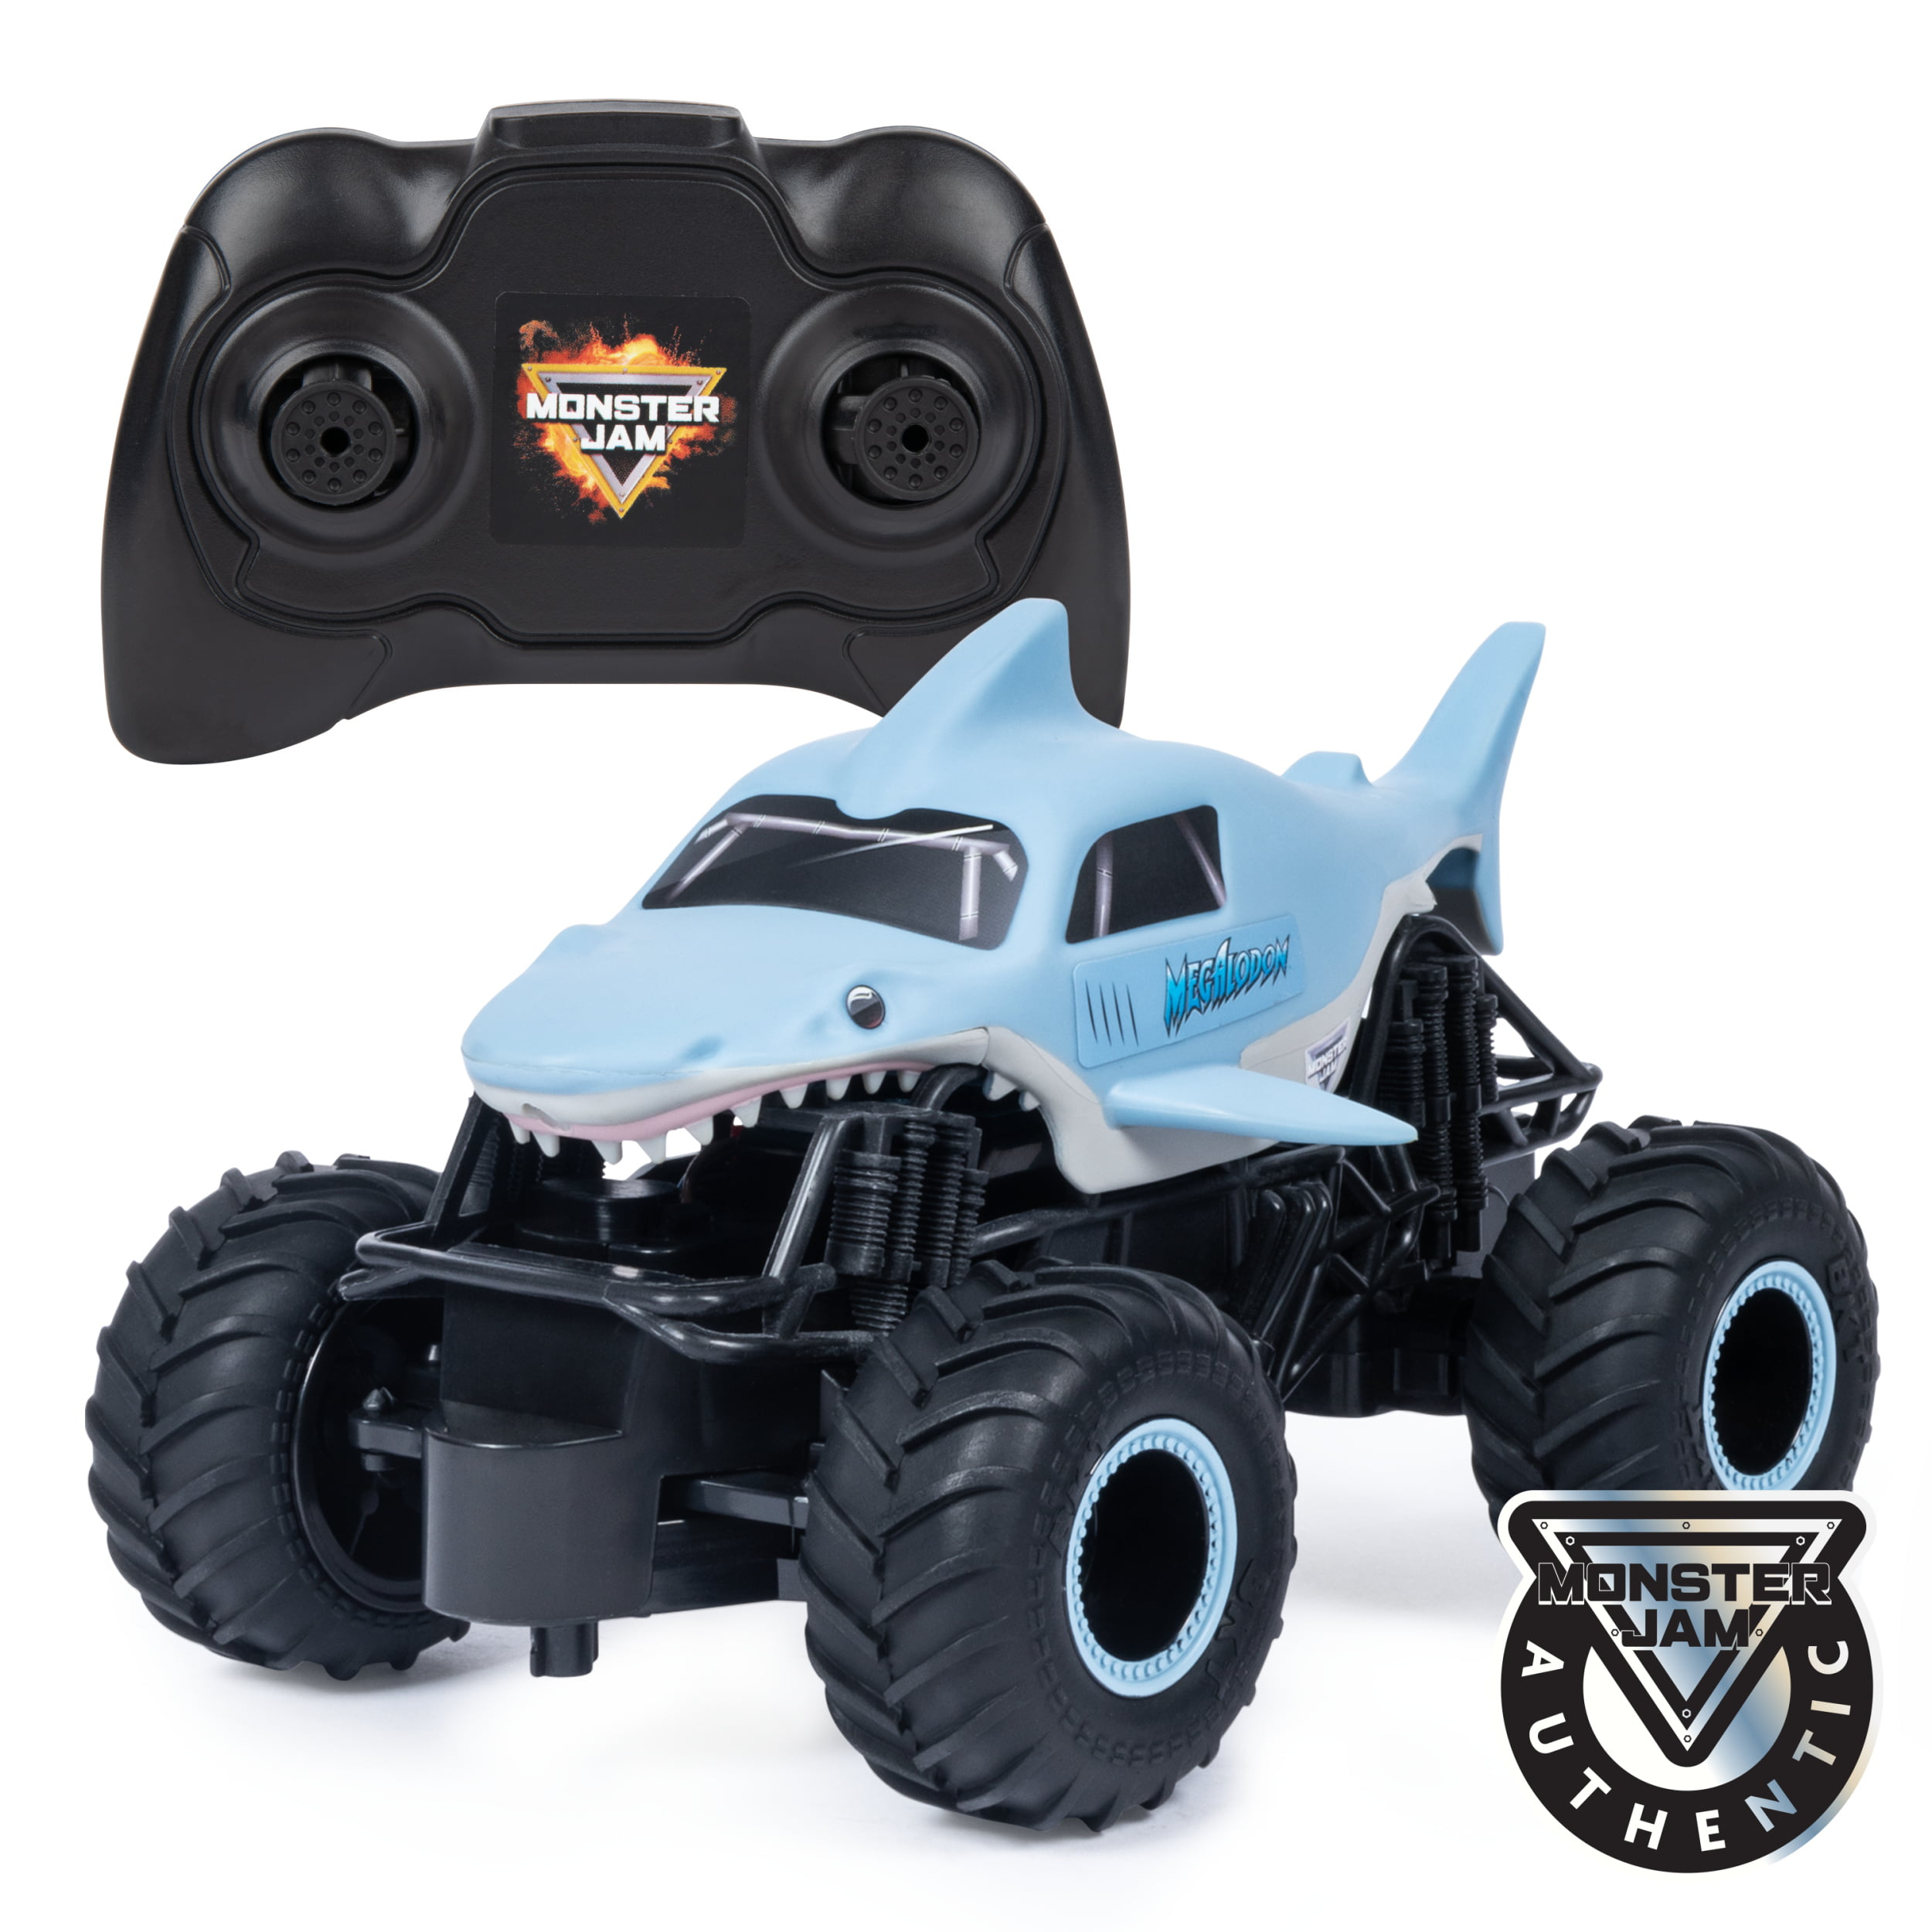 Monster Jam, Official Megalodon Remote Control Monster Truck, 1:24 Scale, 2.4 GHz, for Ages 4 and Up by Spin Master Ltd